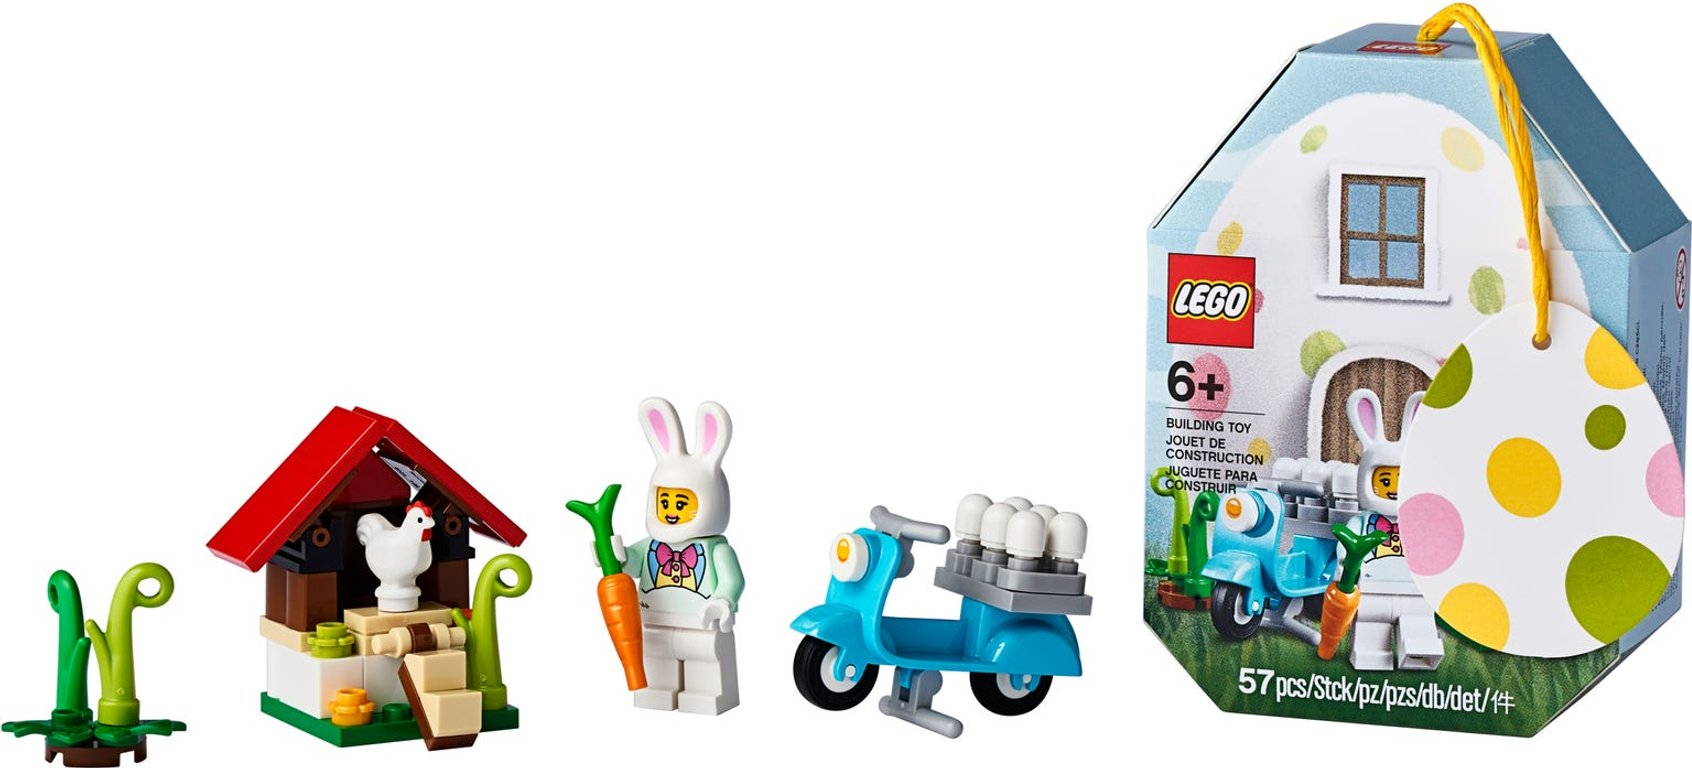 LEGO® Promotions Easter Bunny House components